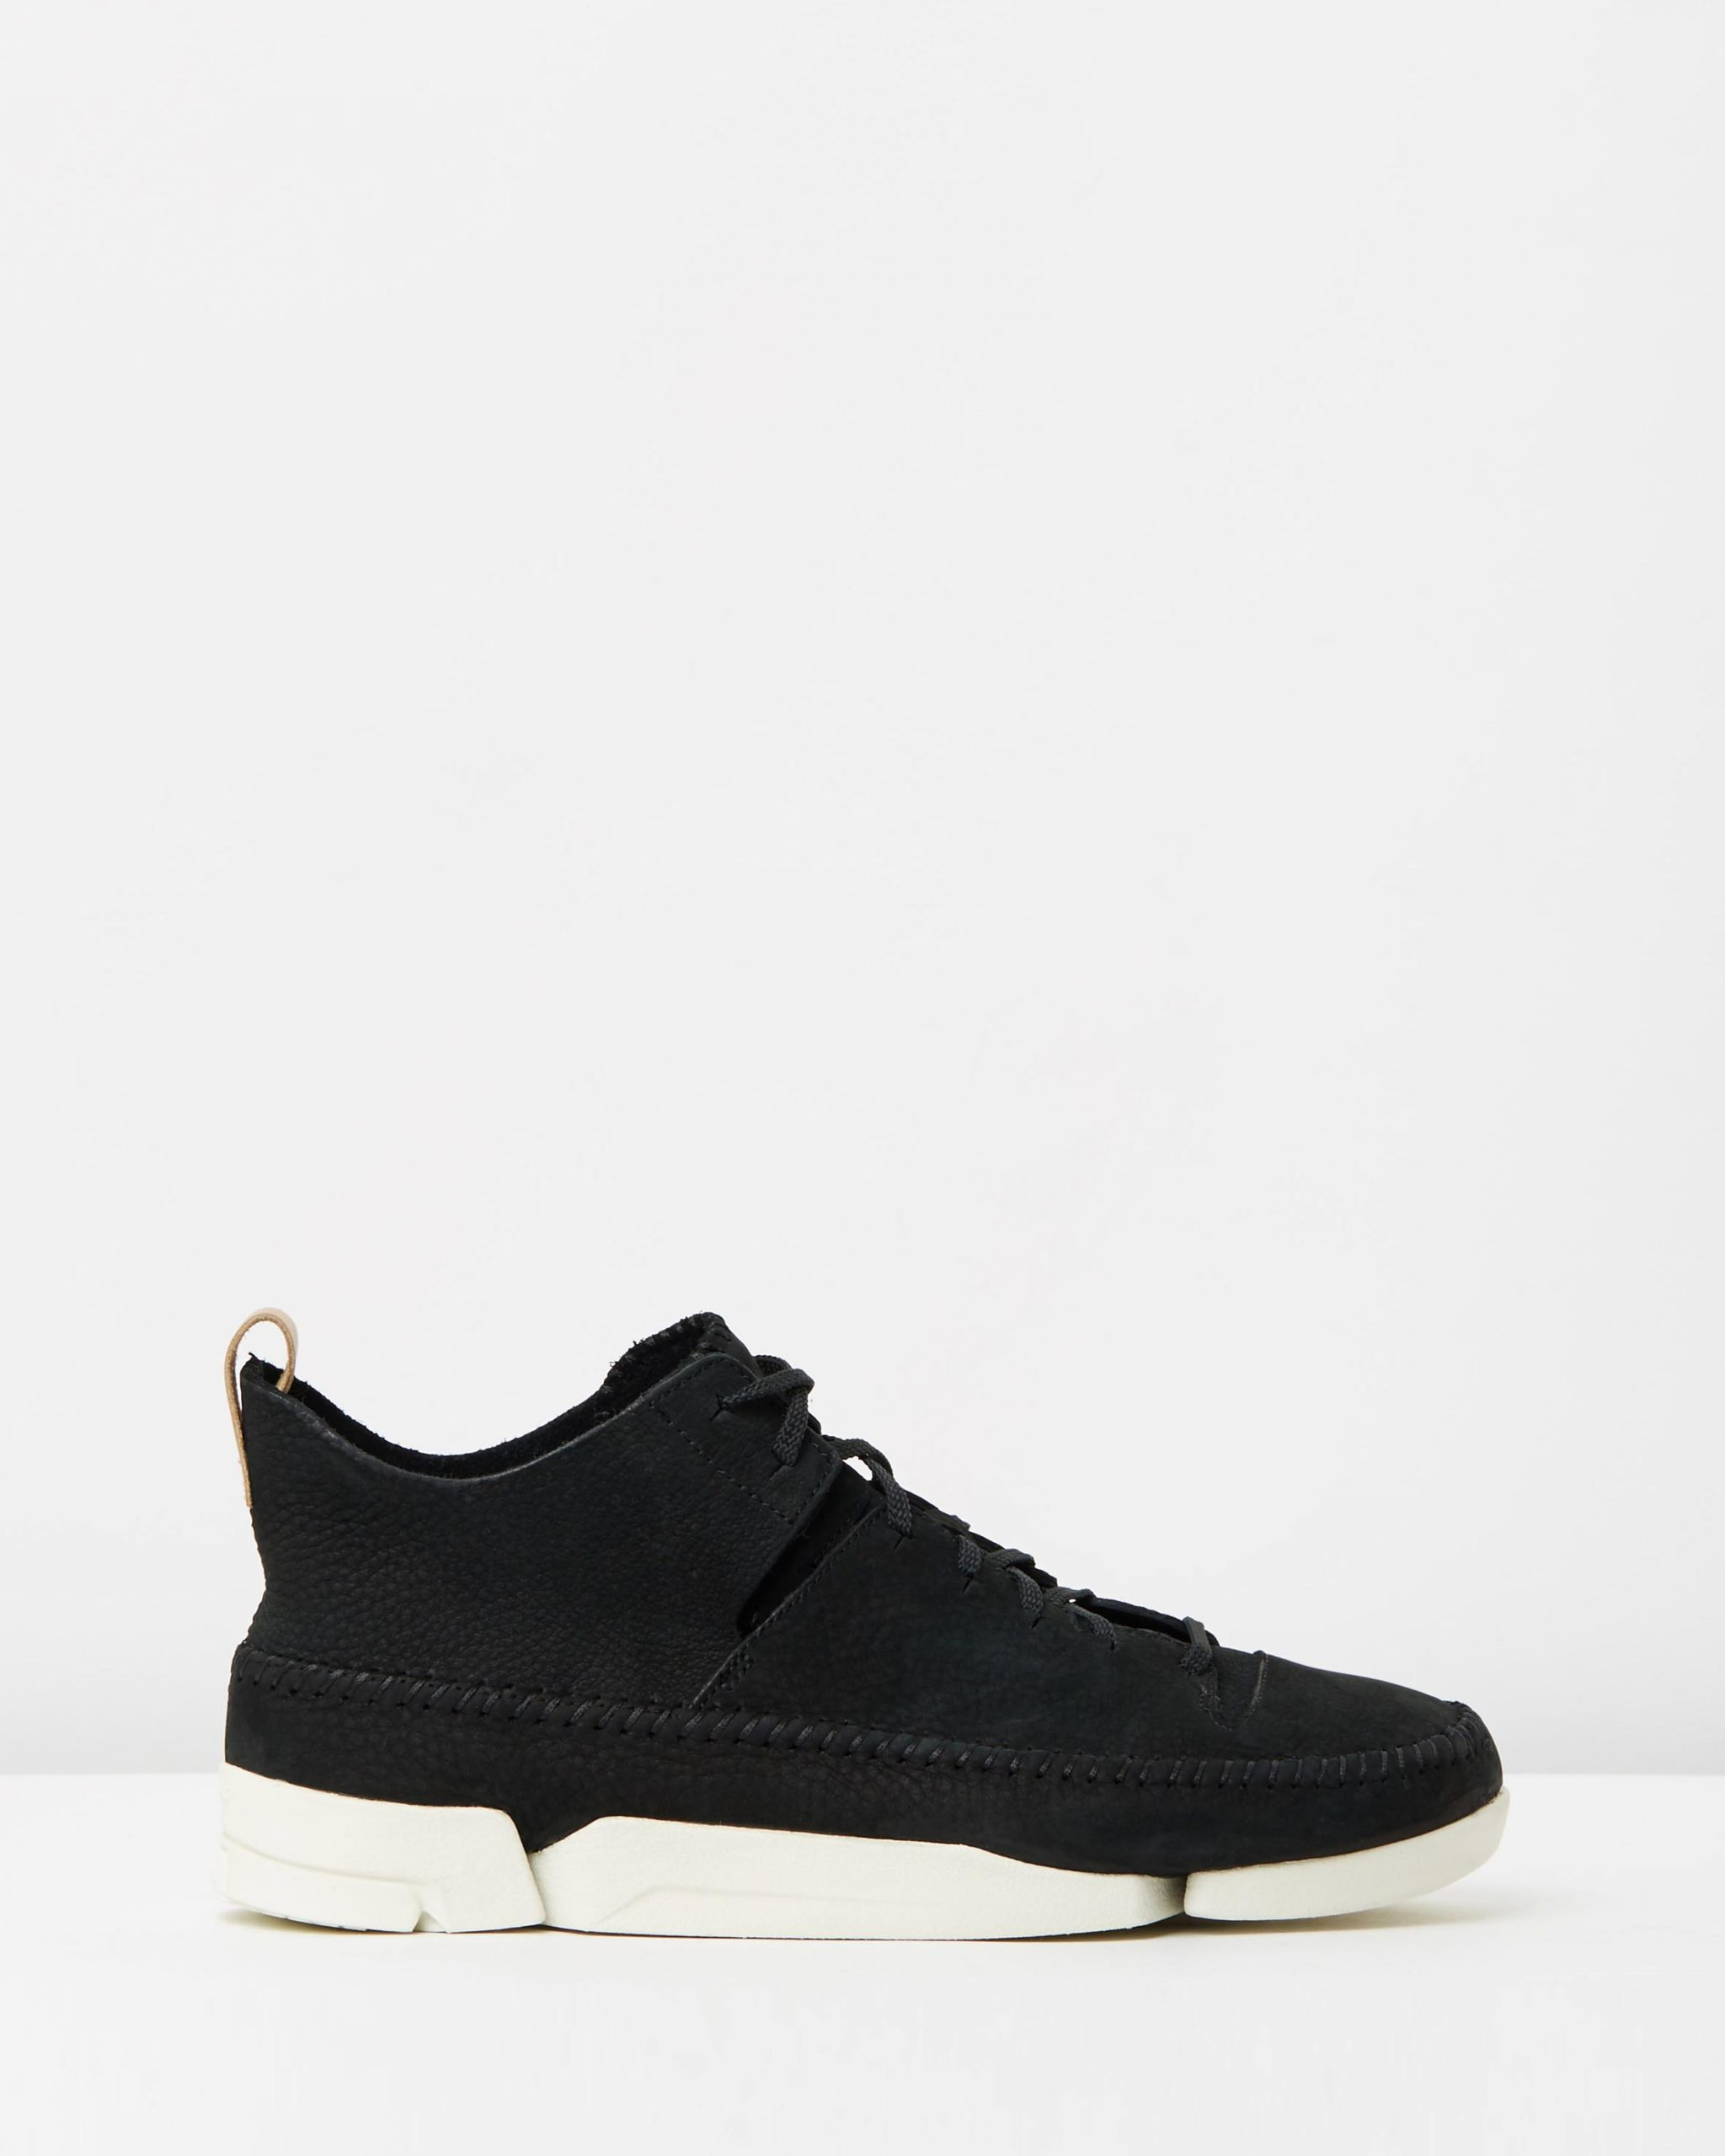 Clarks Originals Trigenic Flex Black Nubuck